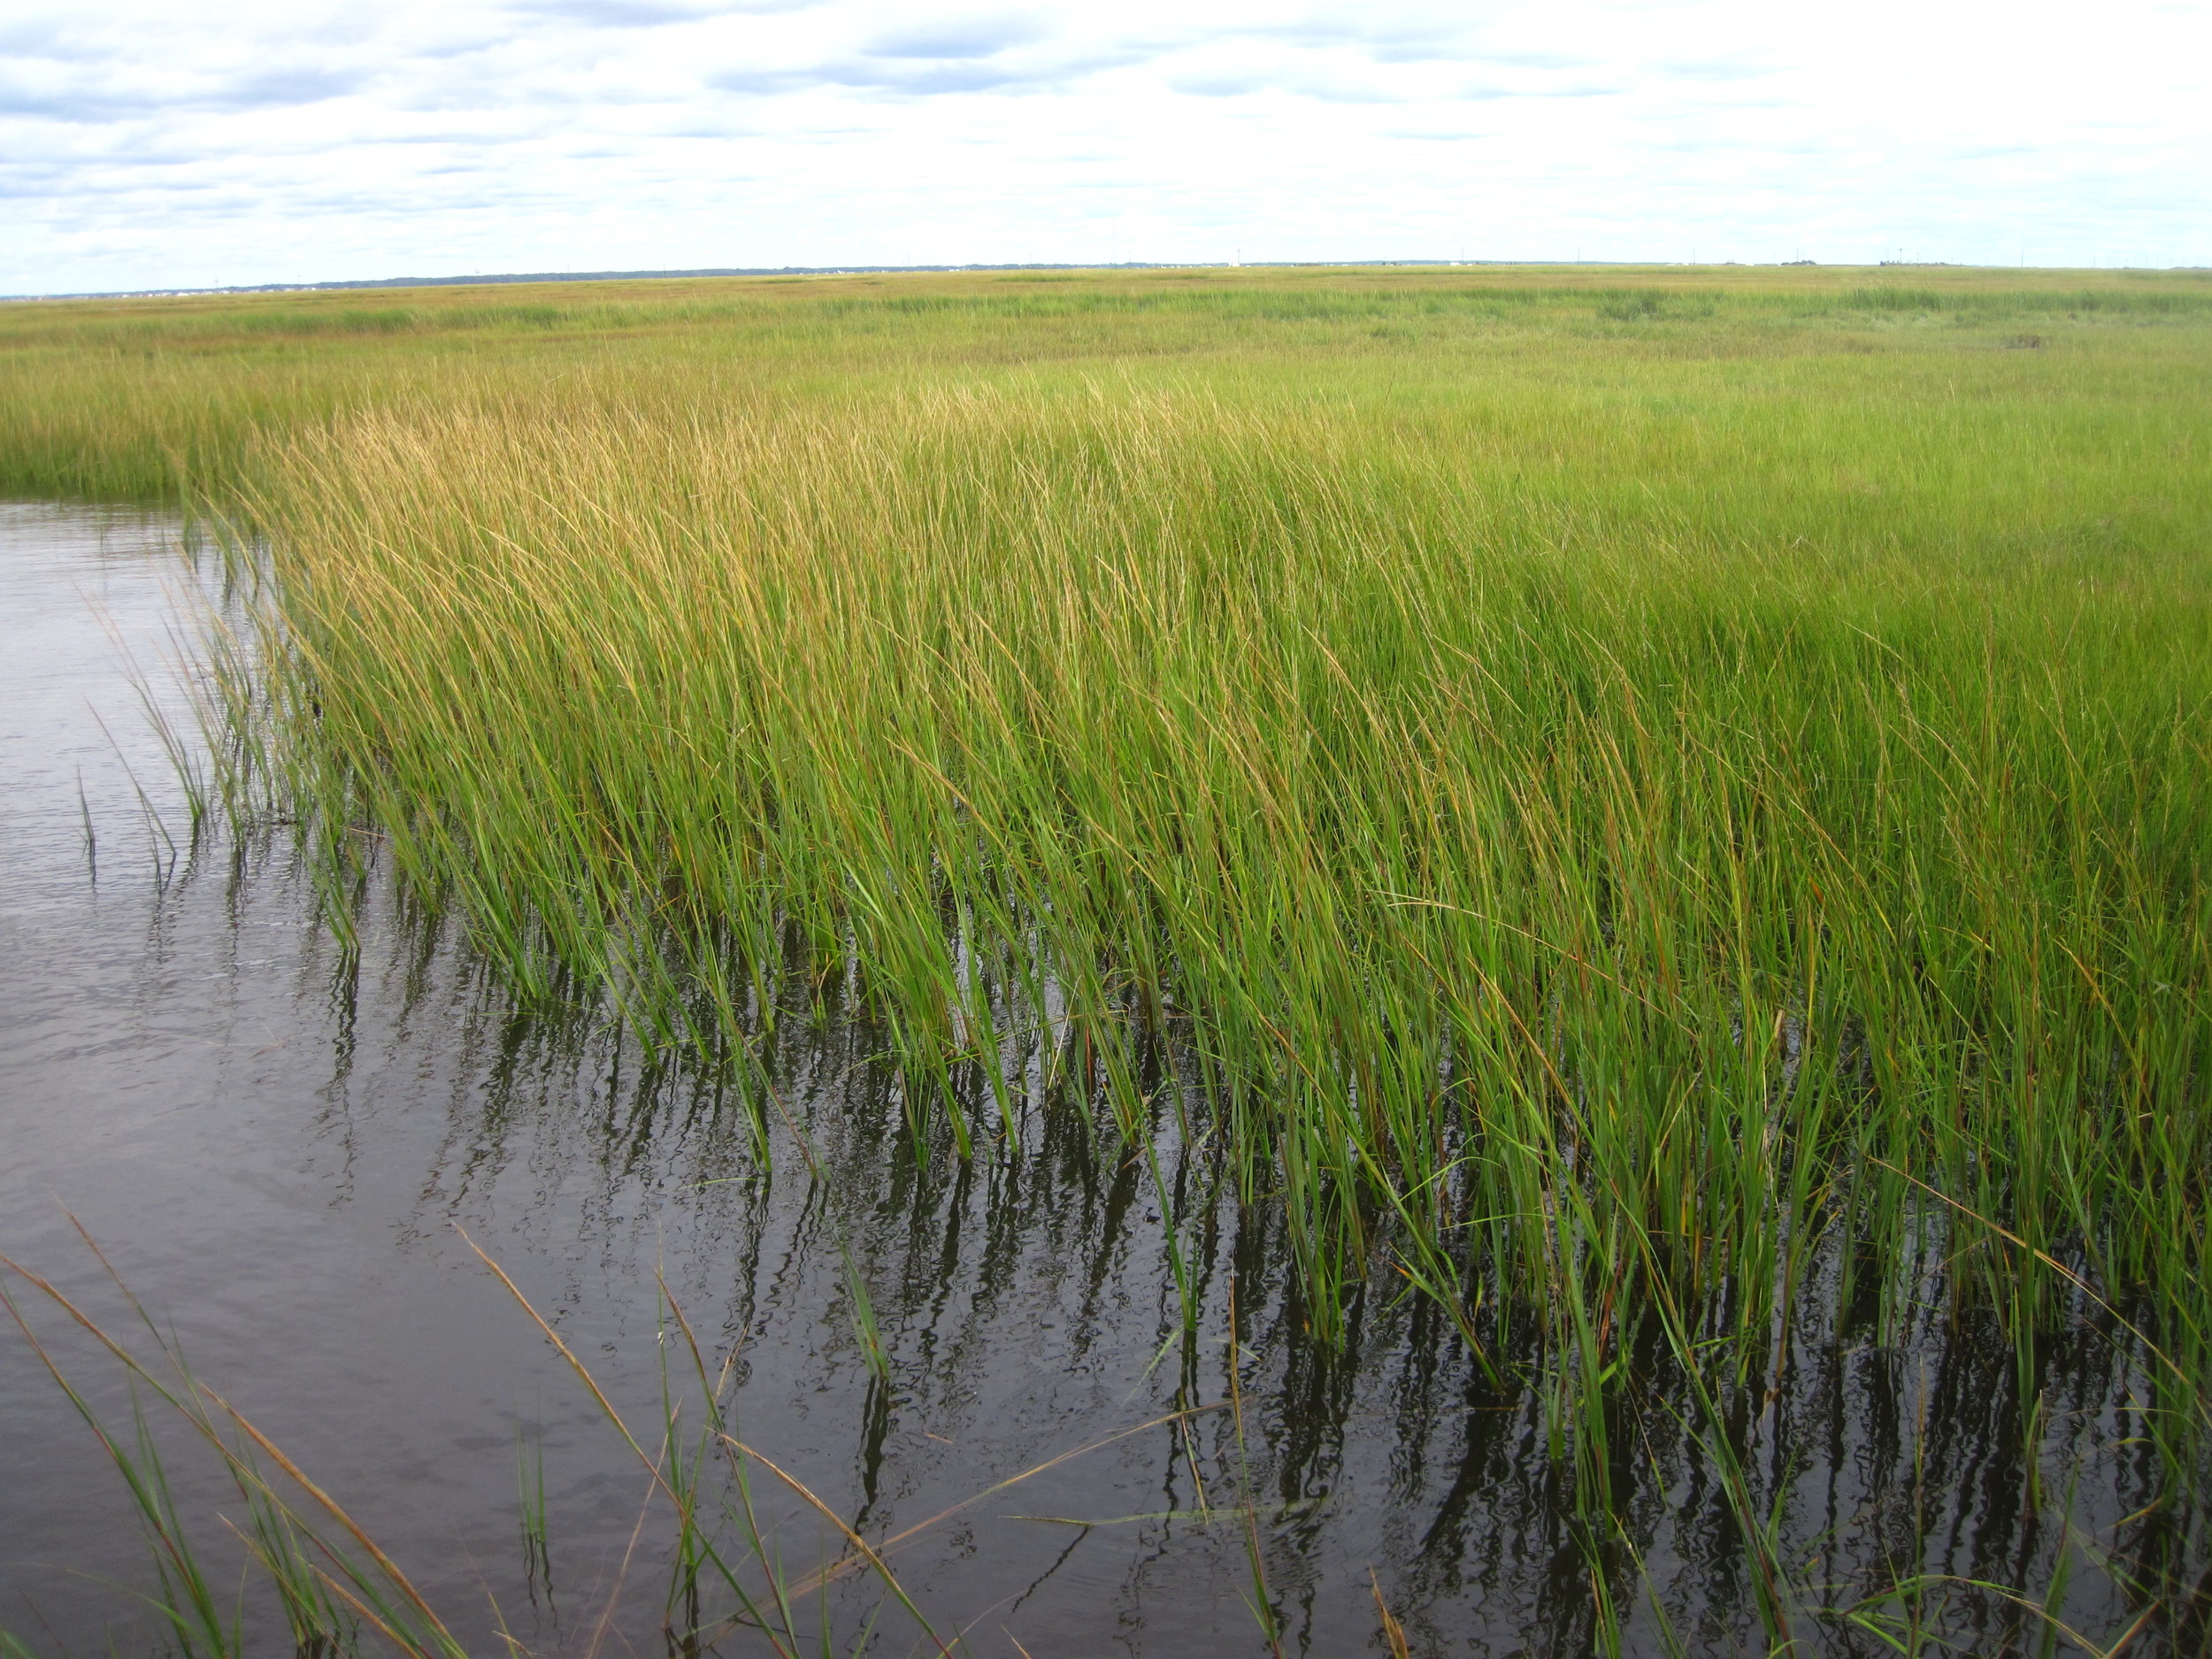 - H. Wetland mapping. Study, identify, and describe how wetland species and habitat changes over time, either seasonally or longer; and explain the implications for organisms.